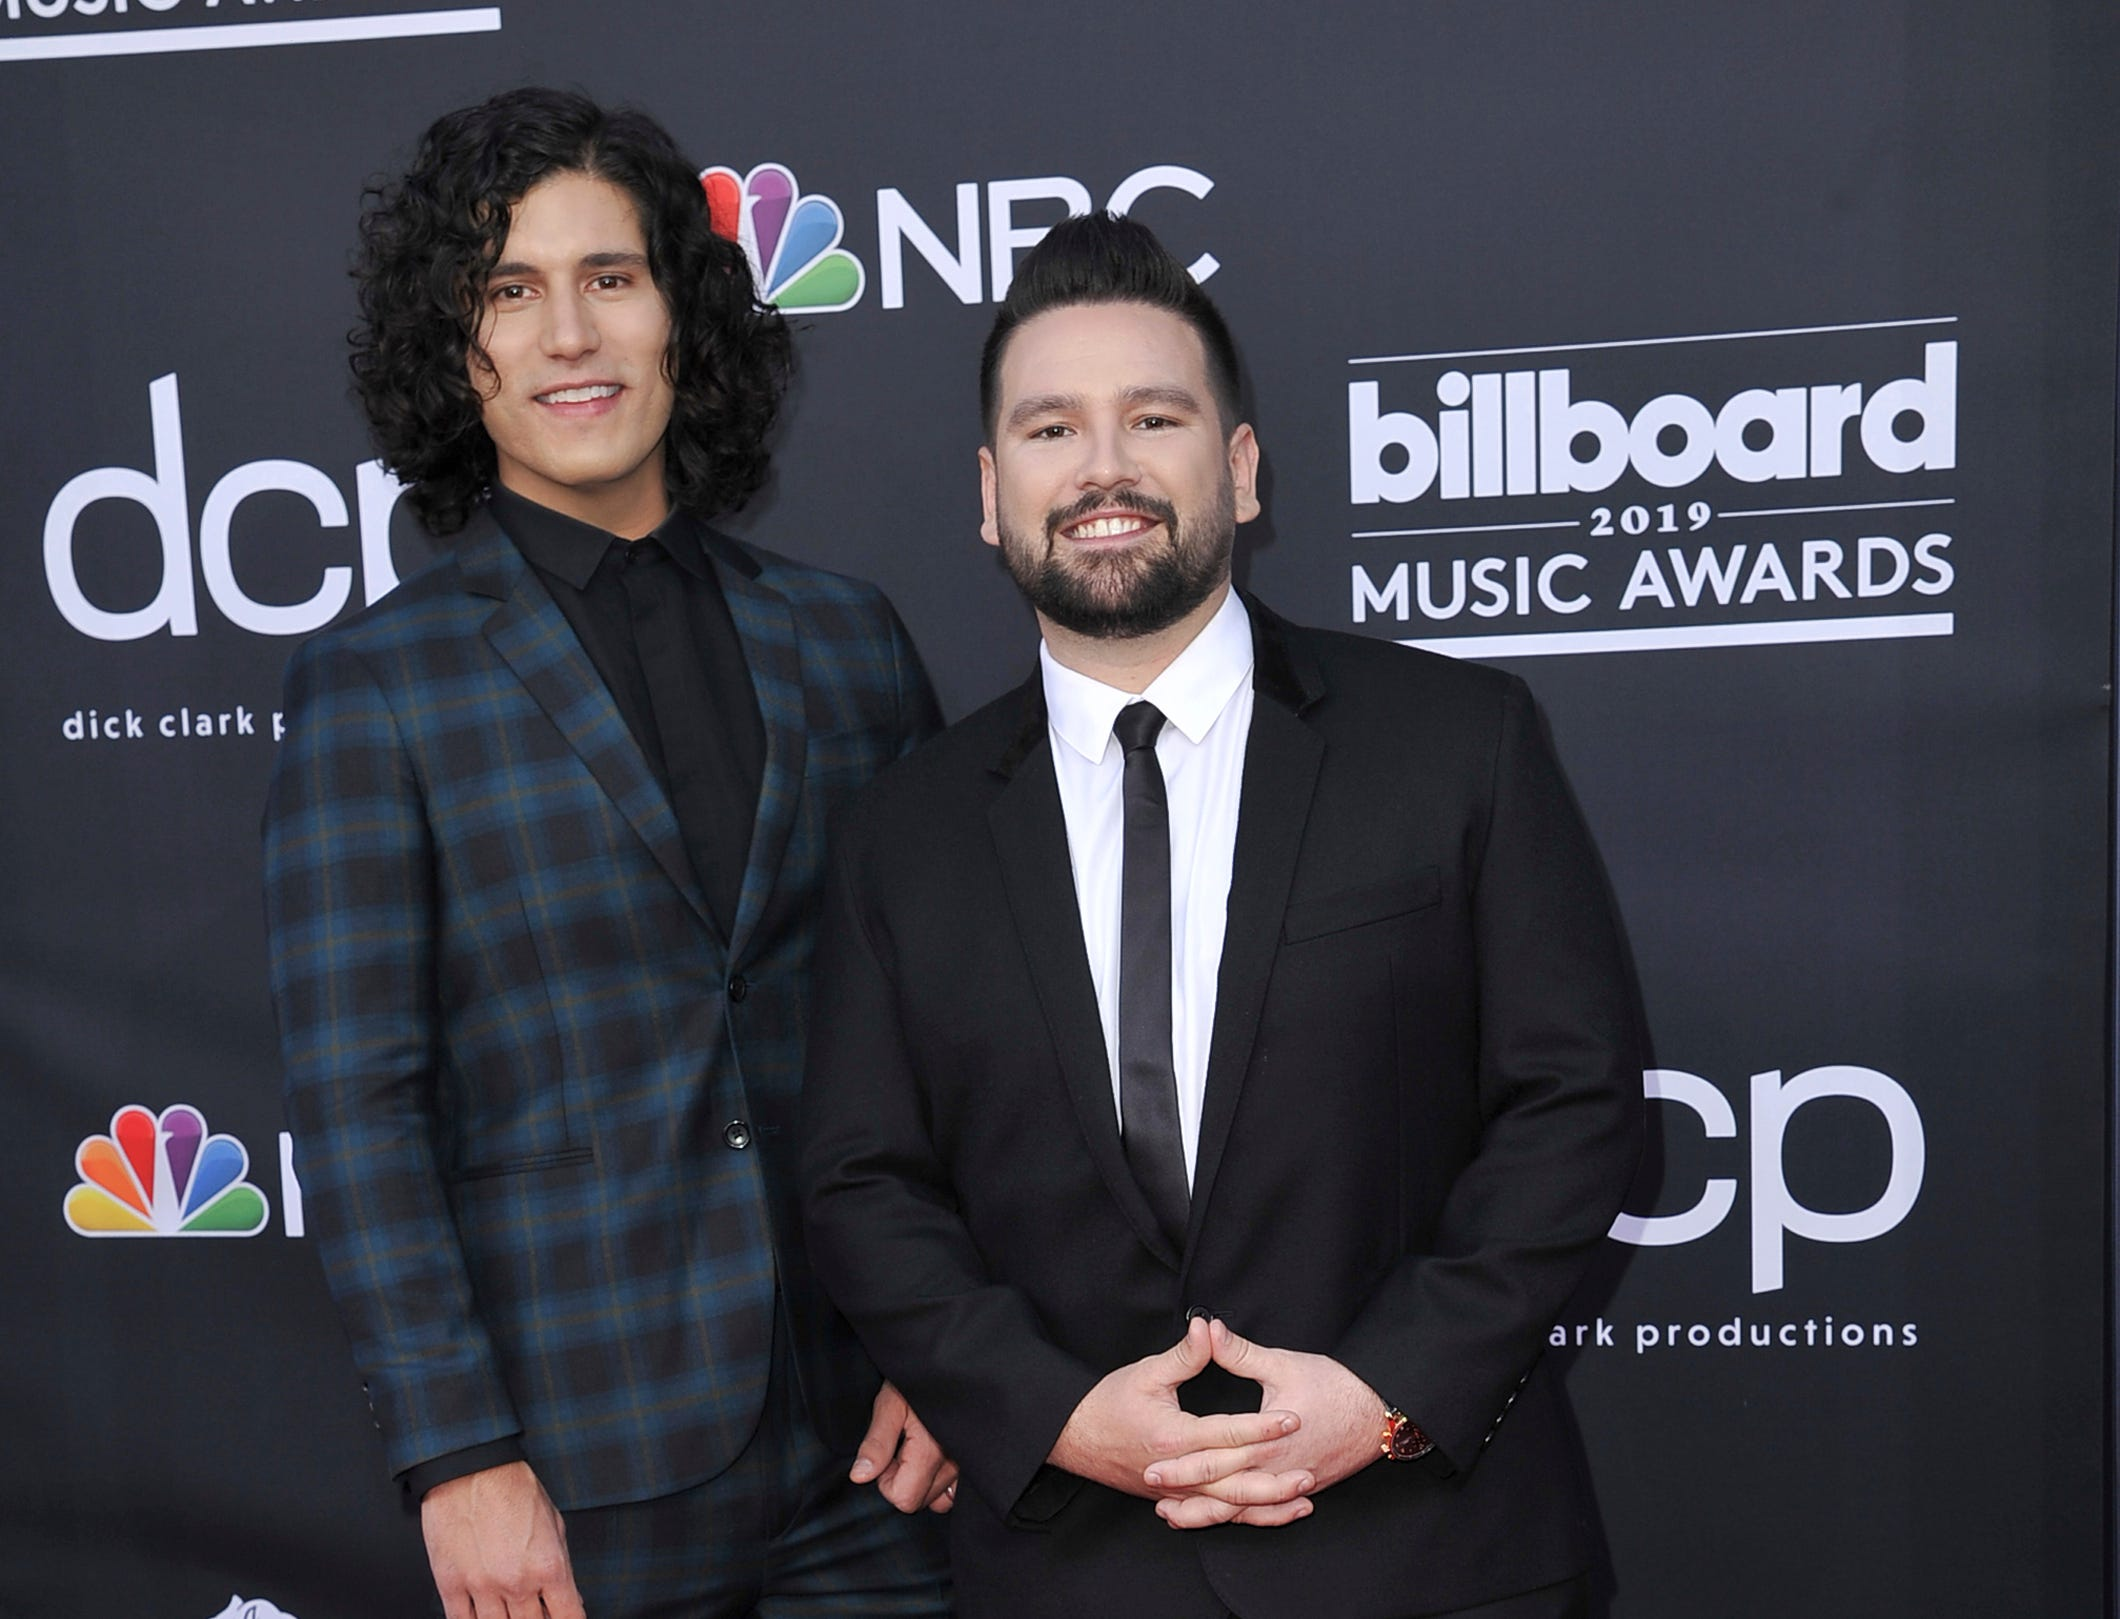 Dan Smyers, left, and Shay Mooney, of Dan + Shay, arrive at the Billboard Music Awards on Wednesday, May 1, 2019, at the MGM Grand Garden Arena in Las Vegas.